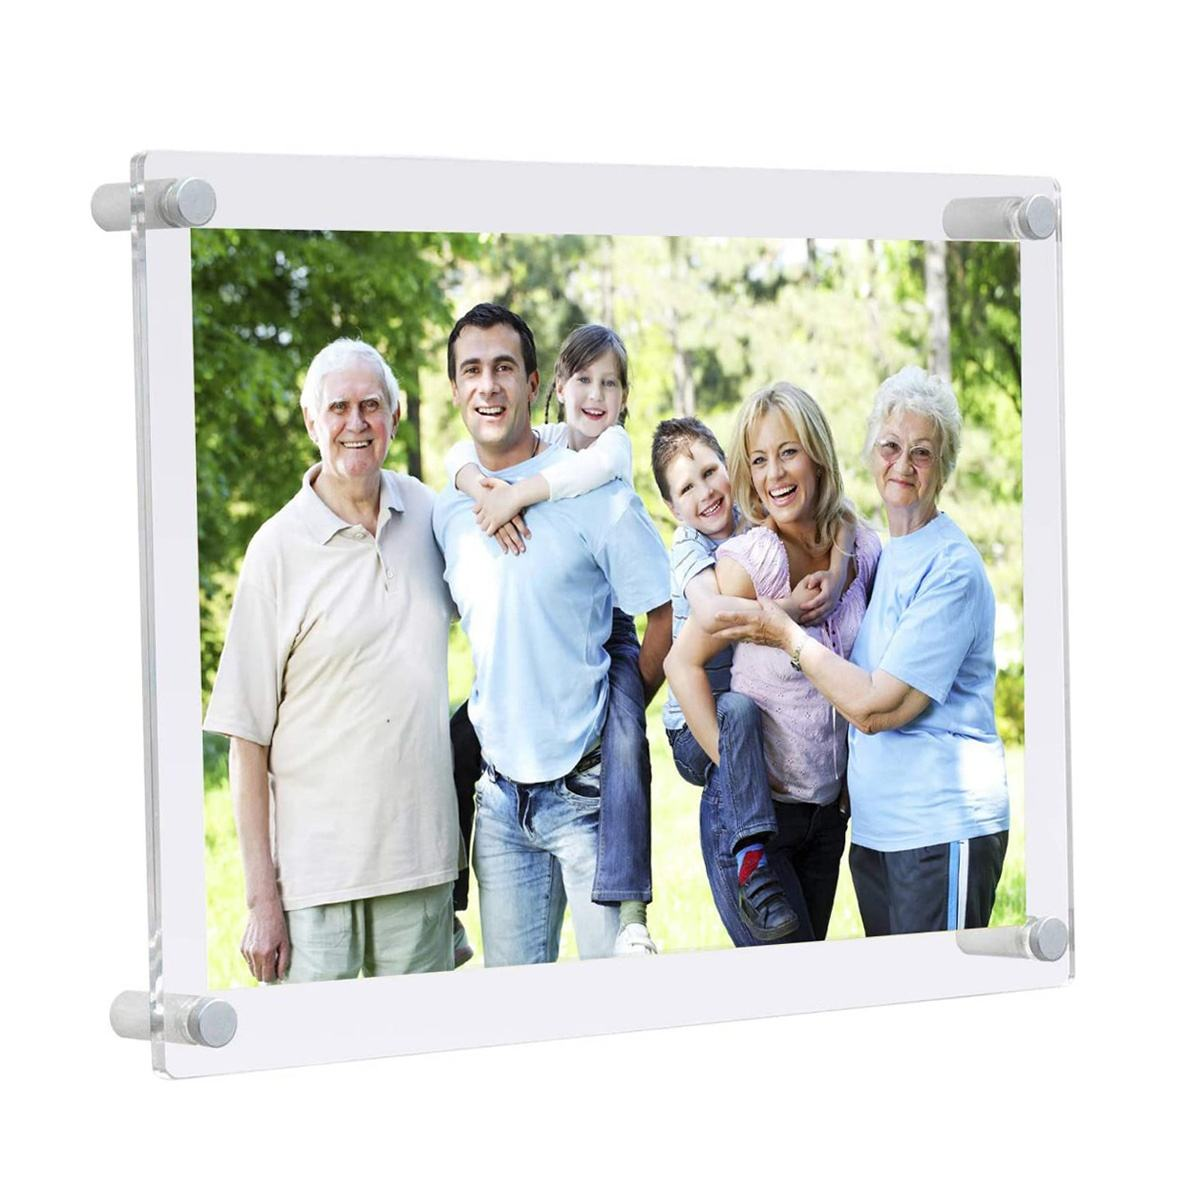 Floating Acrylic Frame 8x10 Picture Frames Bulk Wall Mounted Photo Frame